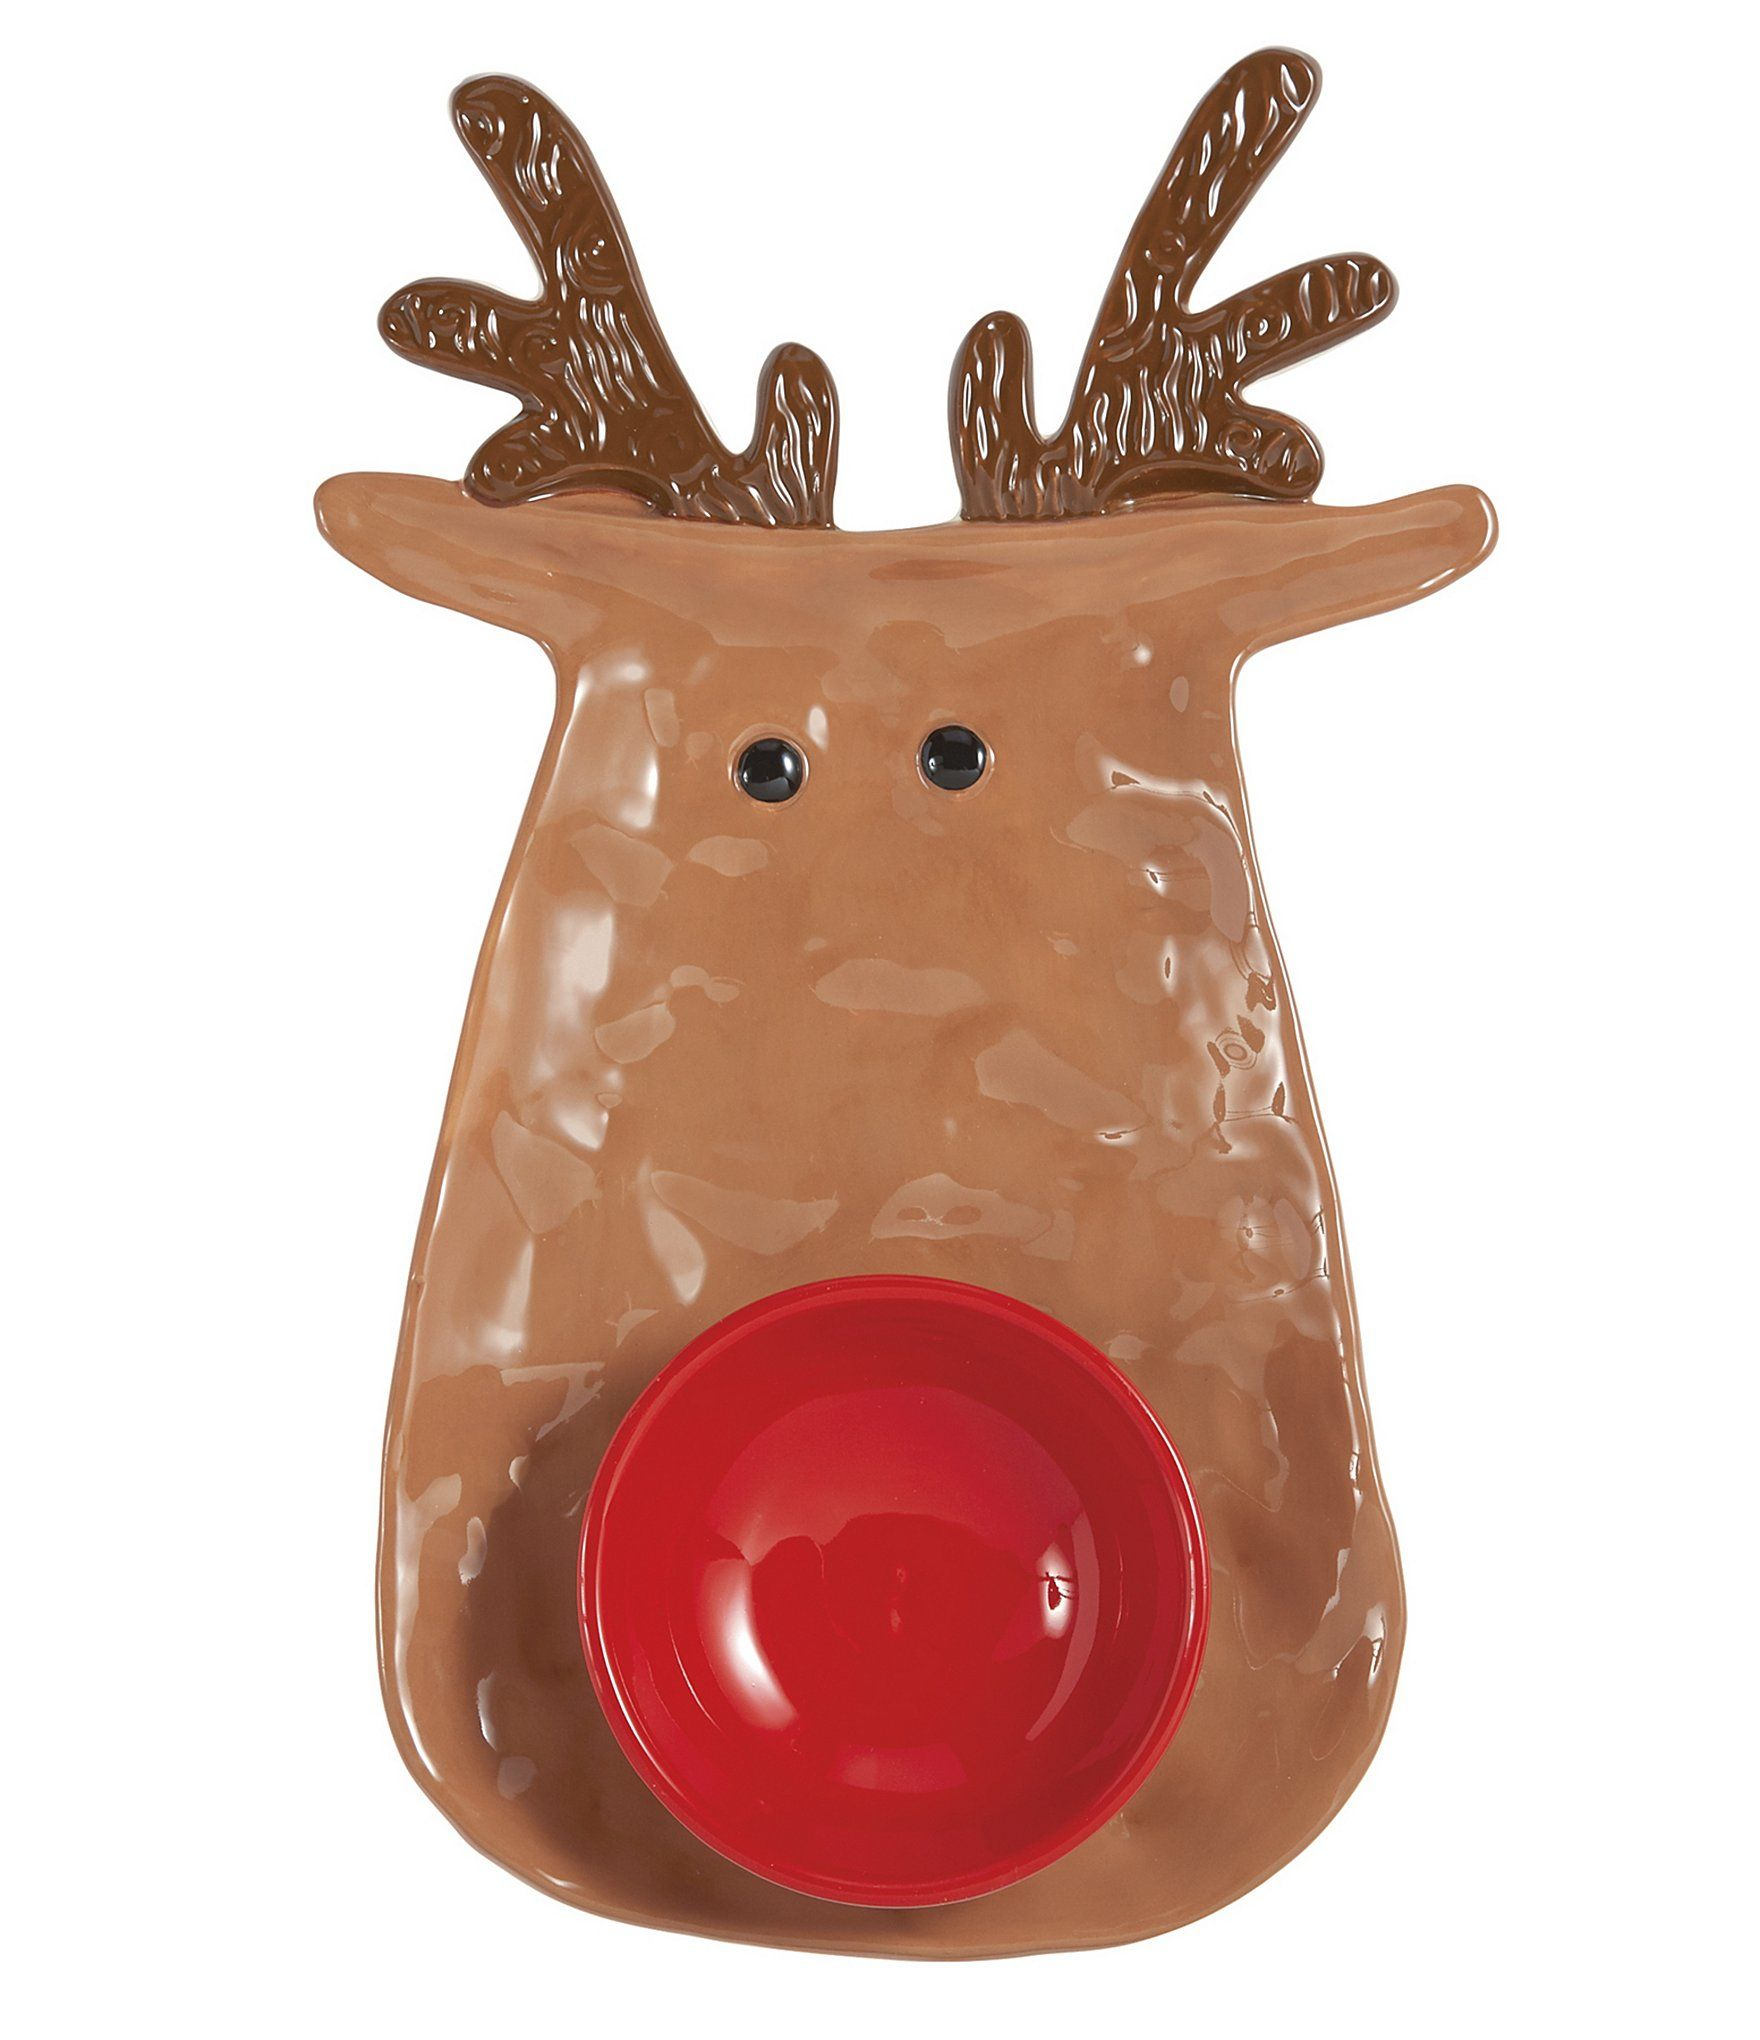 Mud Pie Reindeer Chip & Dip Bowl Dillards Pottery gifts